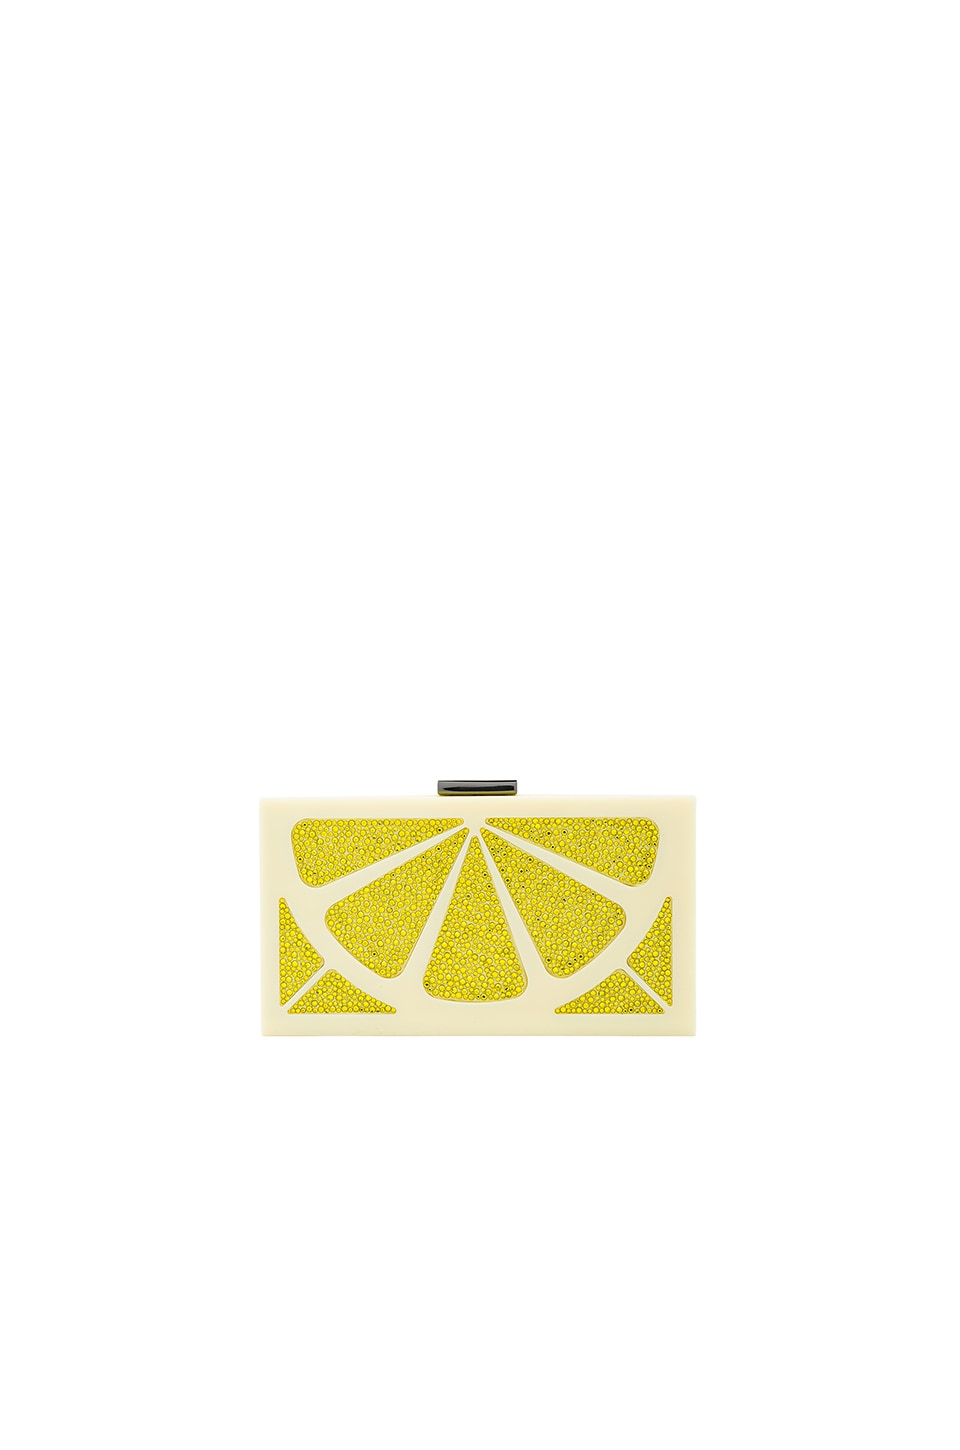 Alice + Olivia Cindy Lemon Clutch in Yellow